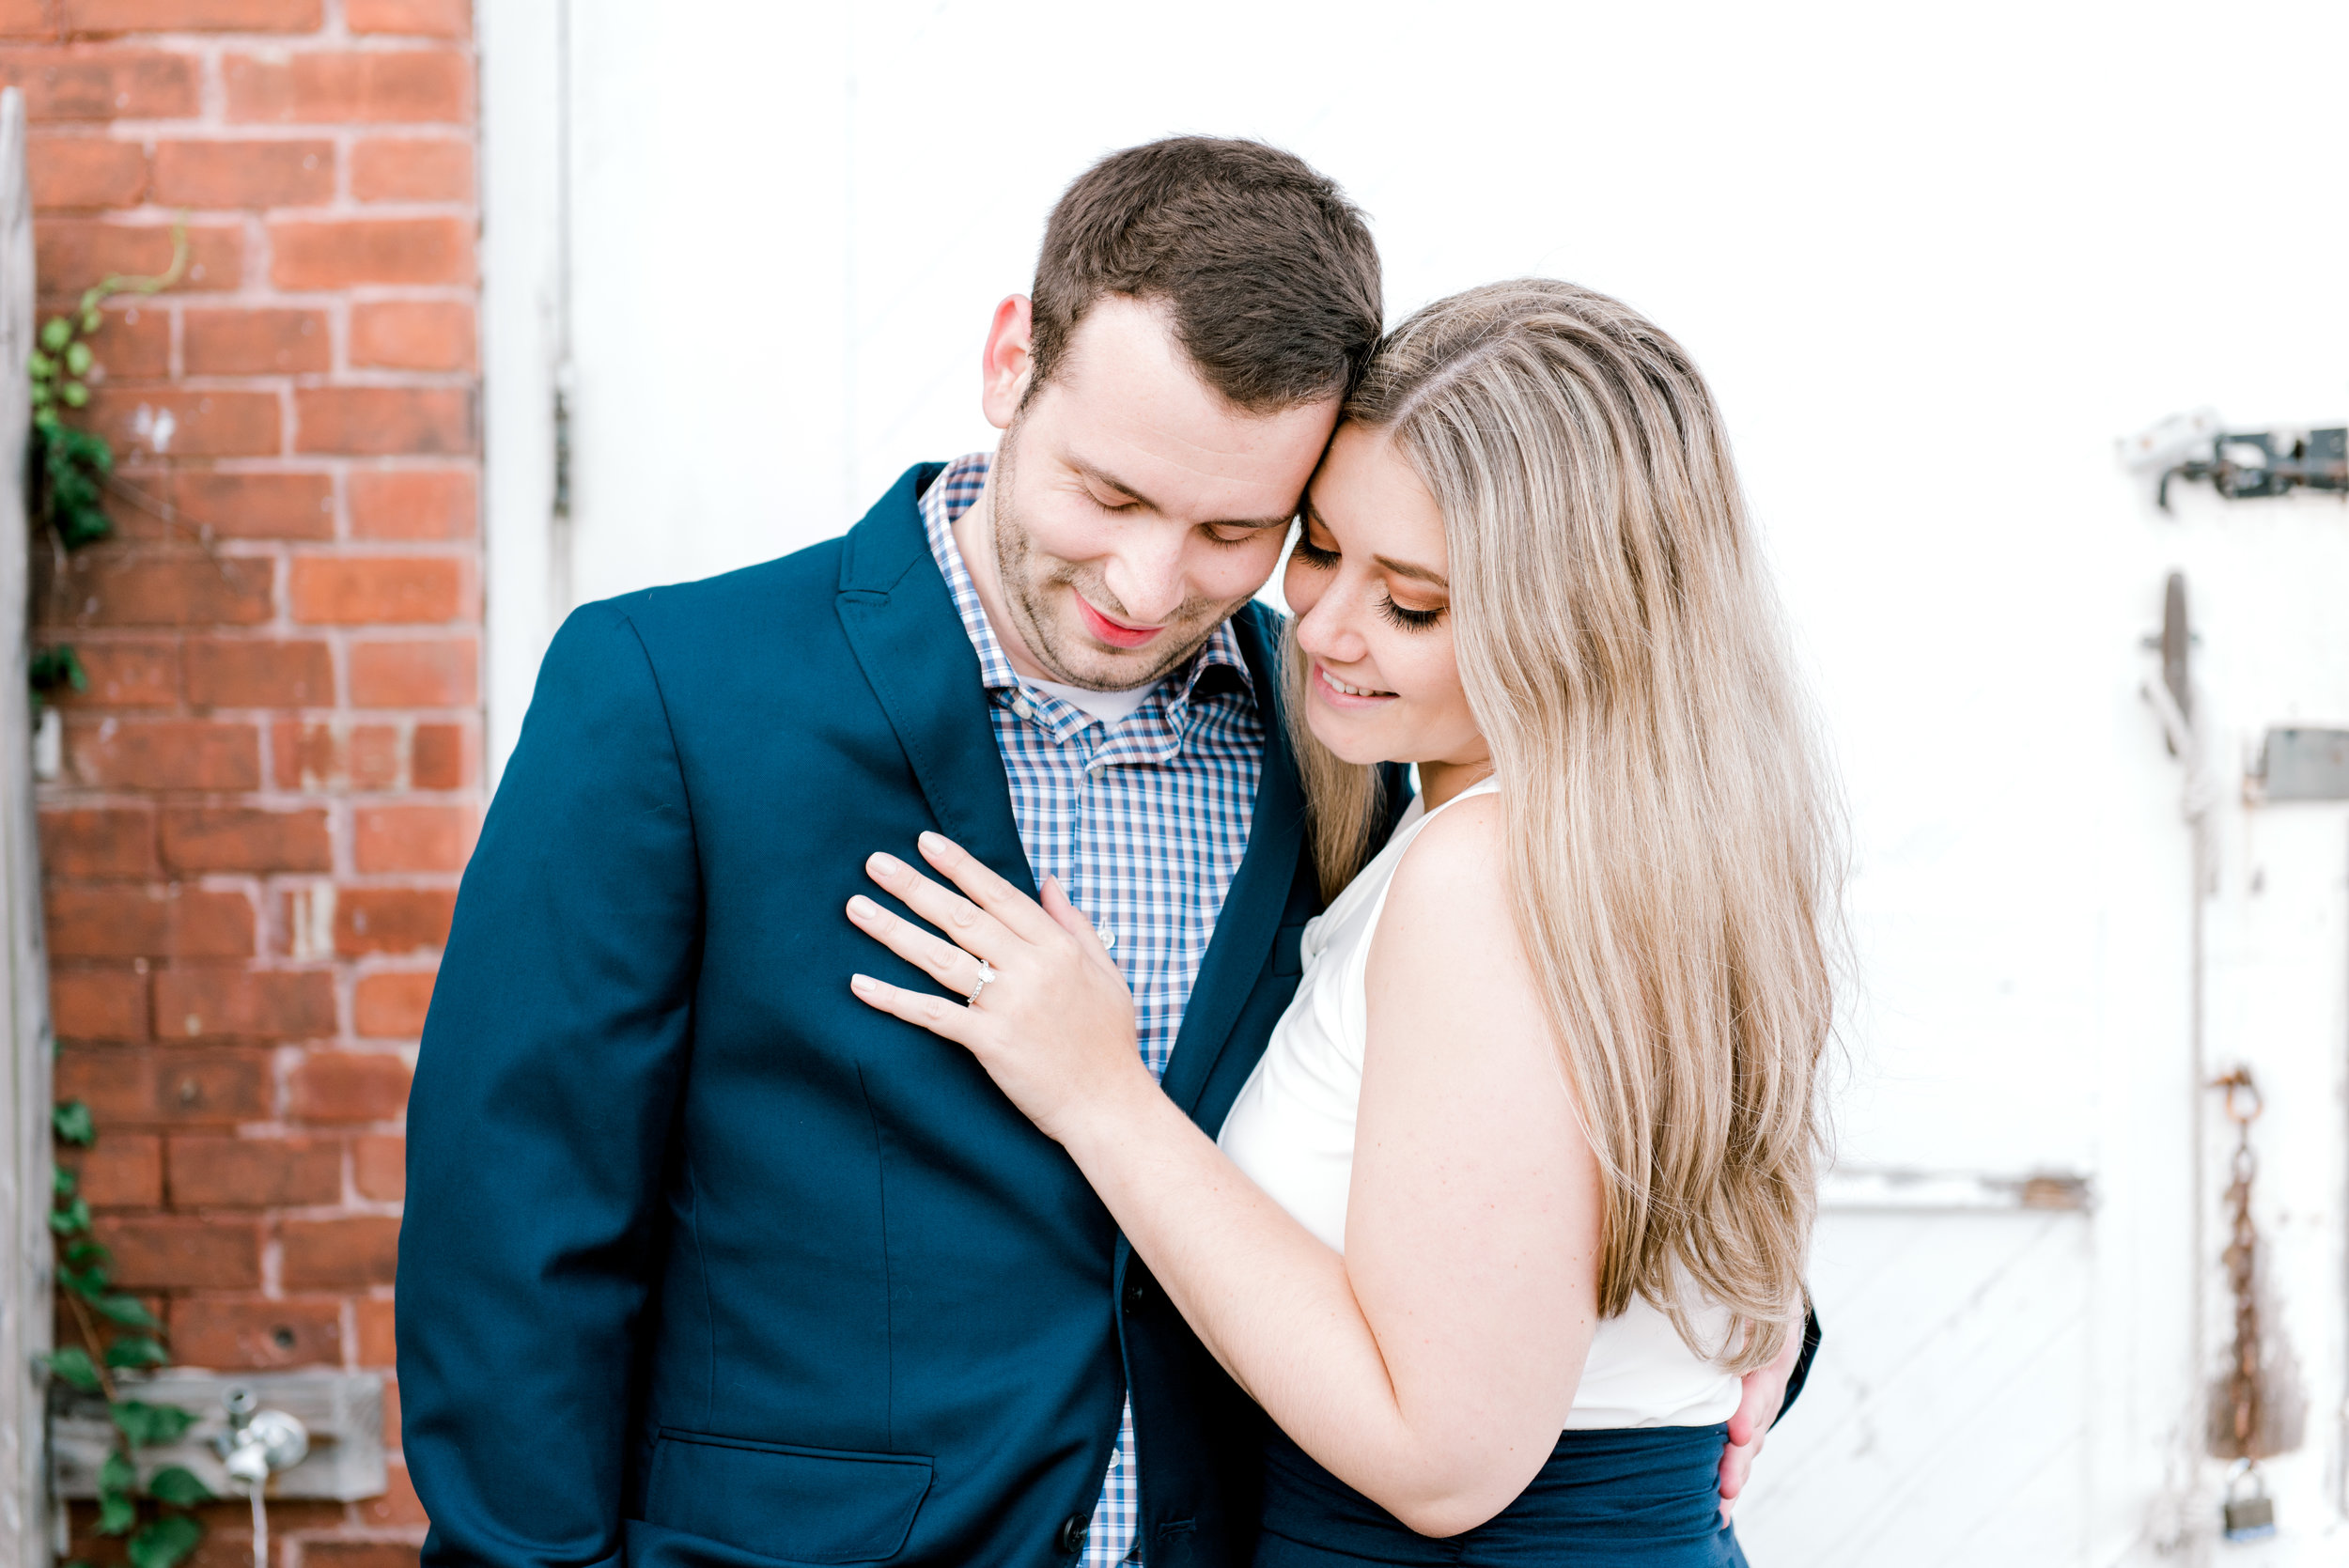 heather_and_connor_engagement-93.jpg